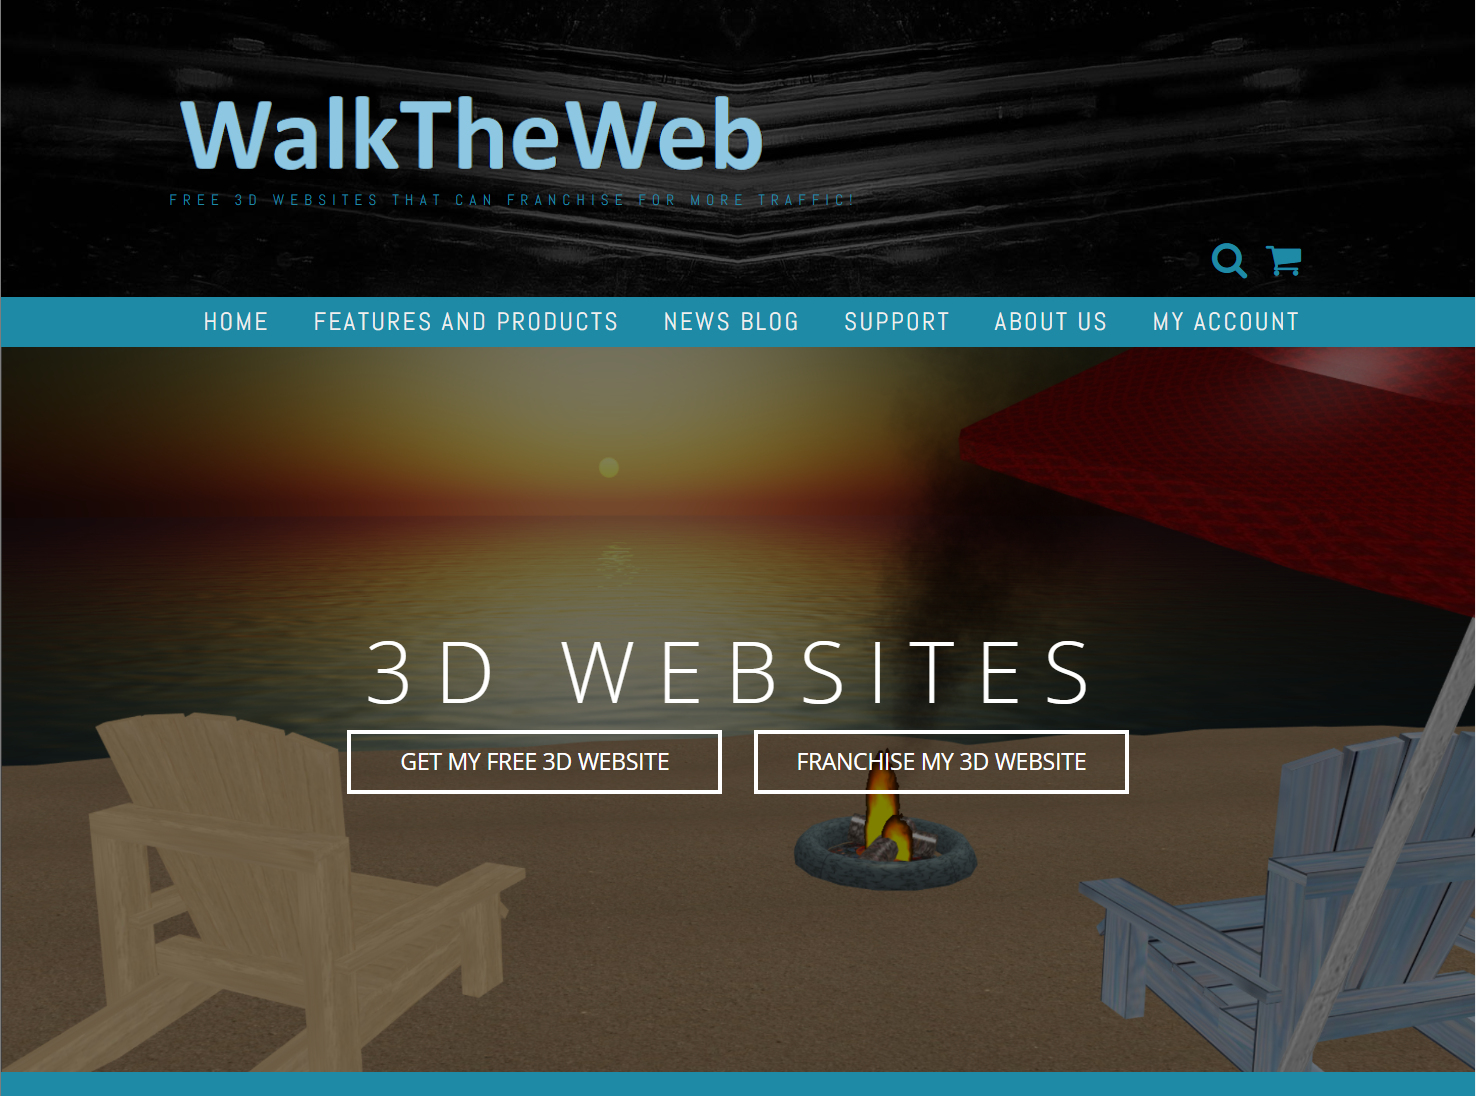 WalkTheWeb – FREE 3D Websites that can Franchise for More